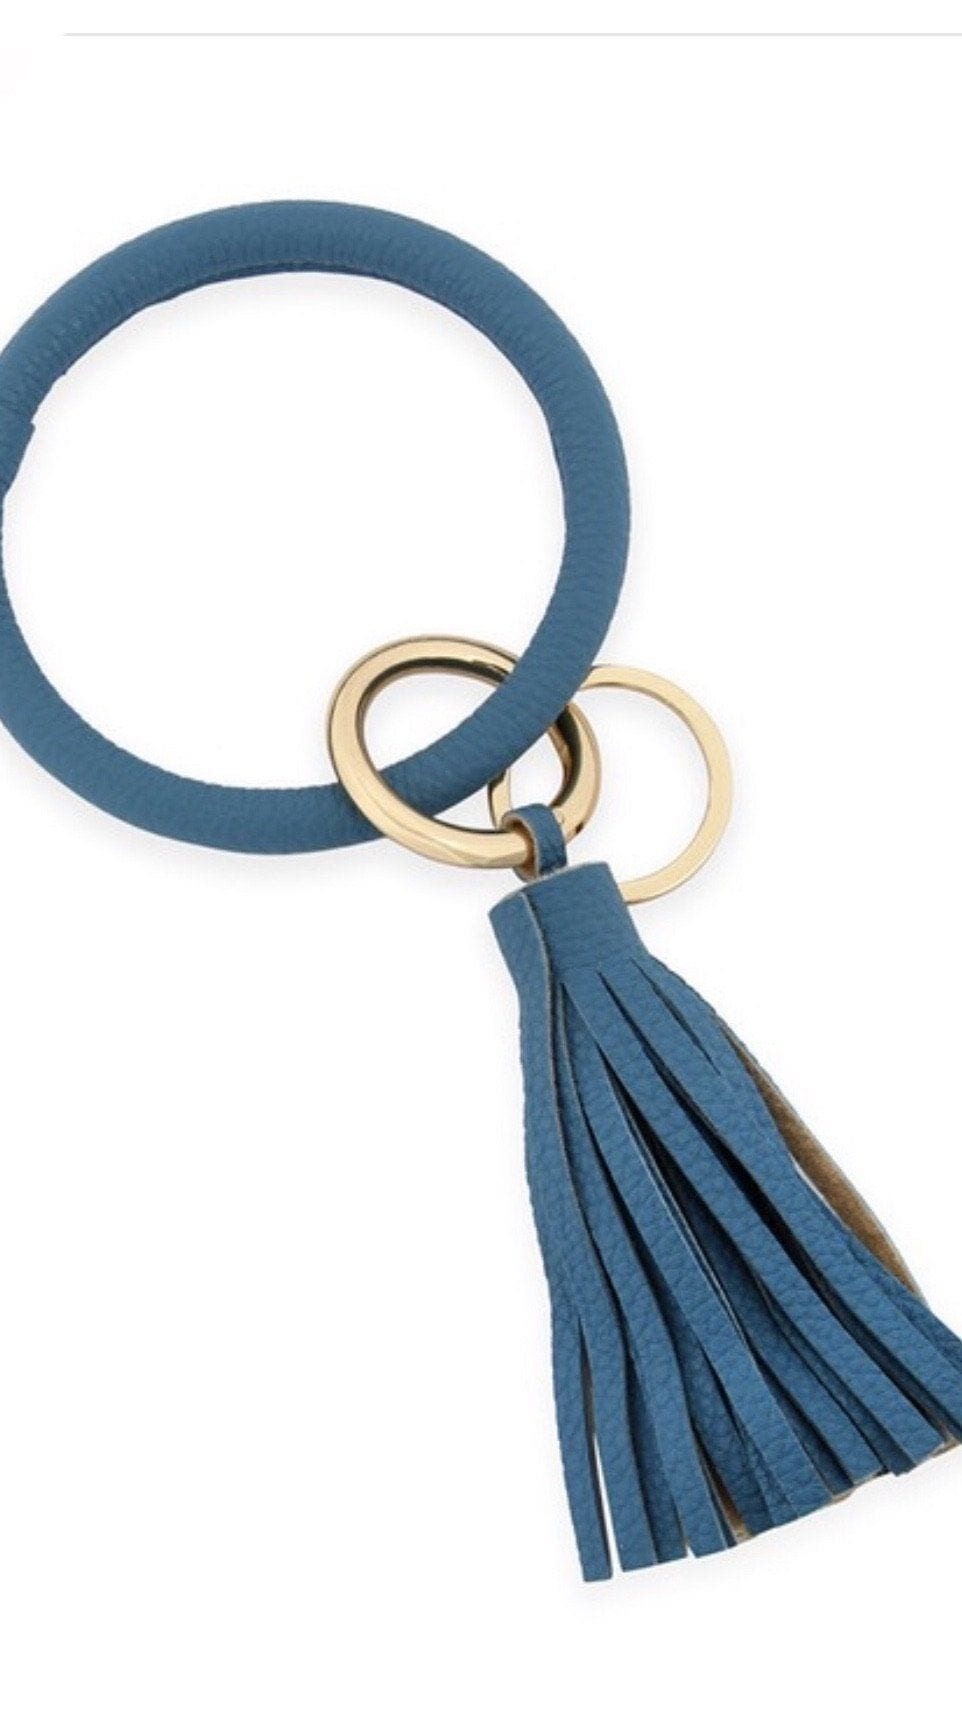 Leather Tassel Key Chain Ring